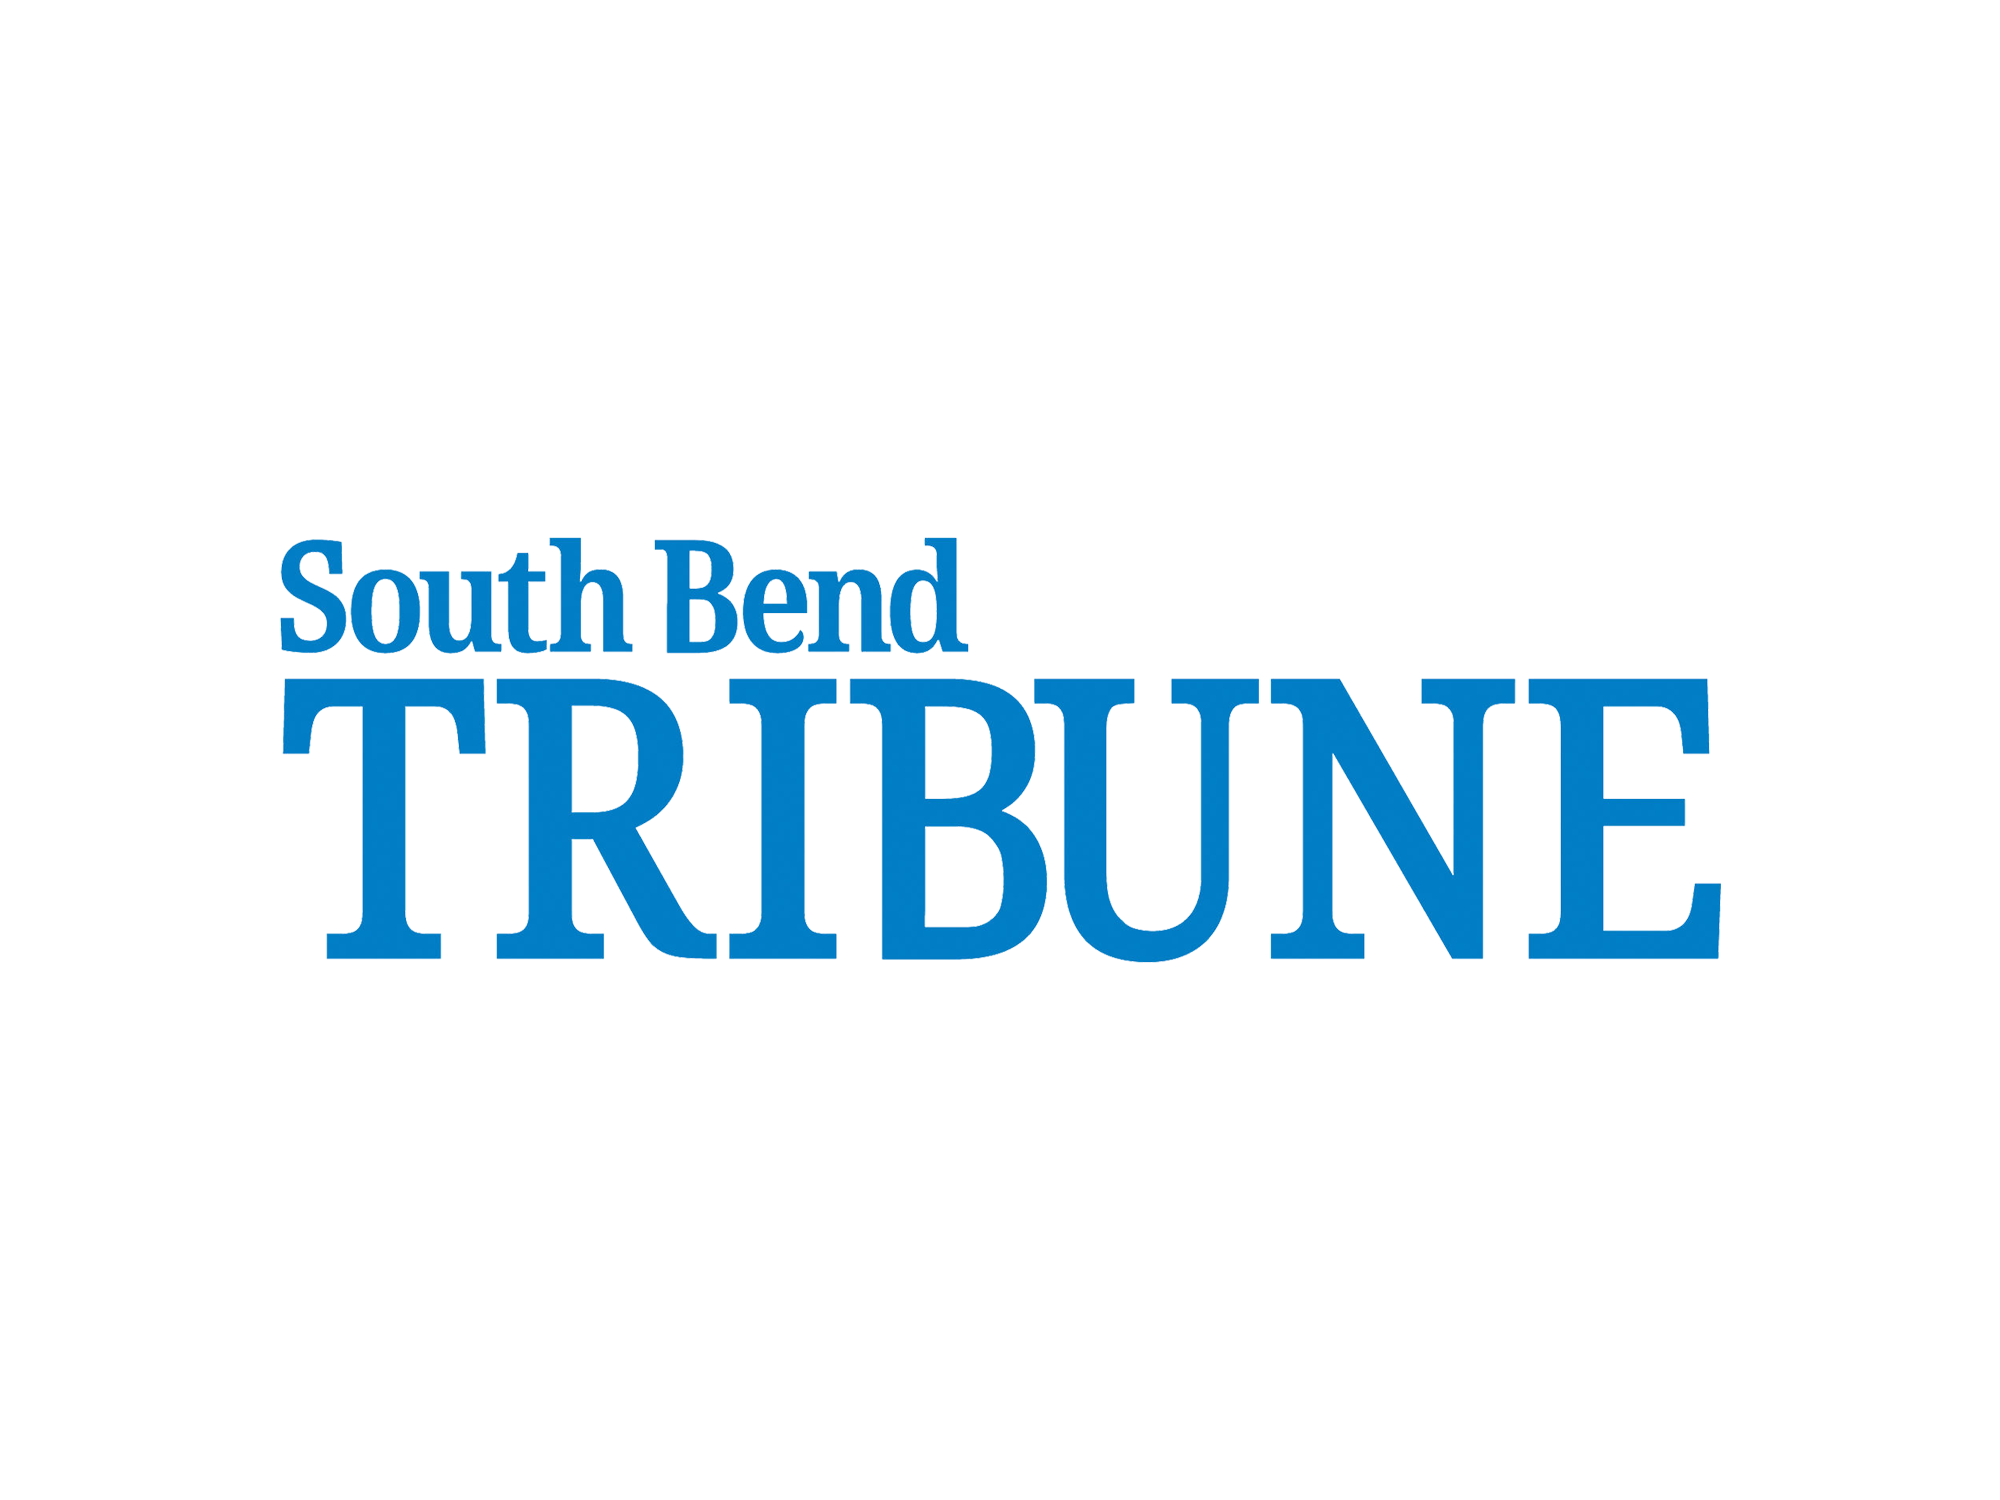 """South Bend Startup Generator Completes First Cycle - Hurry Home plans to create an alternative form of financing for prospective homeowners, through """"fractional ownership"""" from a group of investors.Read More →"""